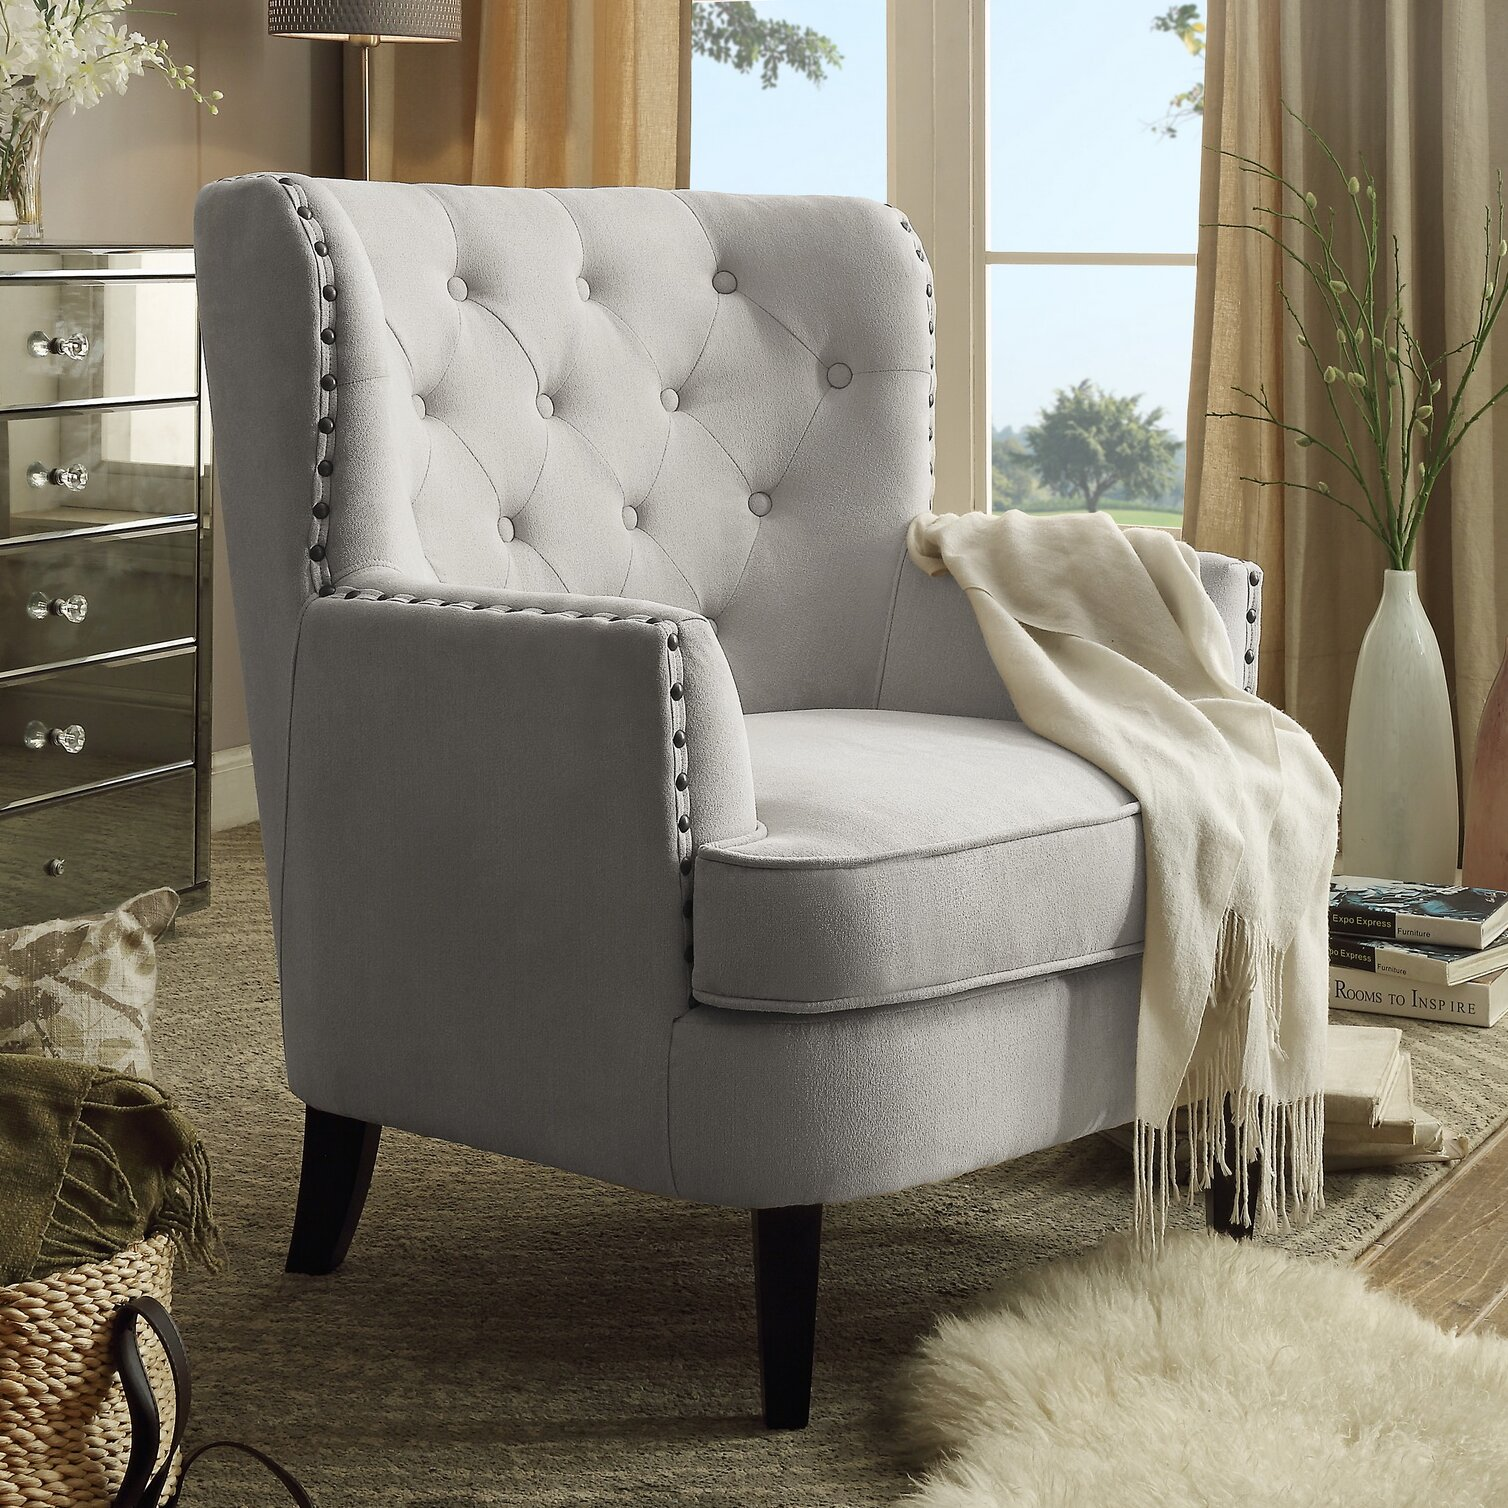 Next Furniture Living Room: INSTANT HOME Chrisanna Wingback Club Chair & Reviews